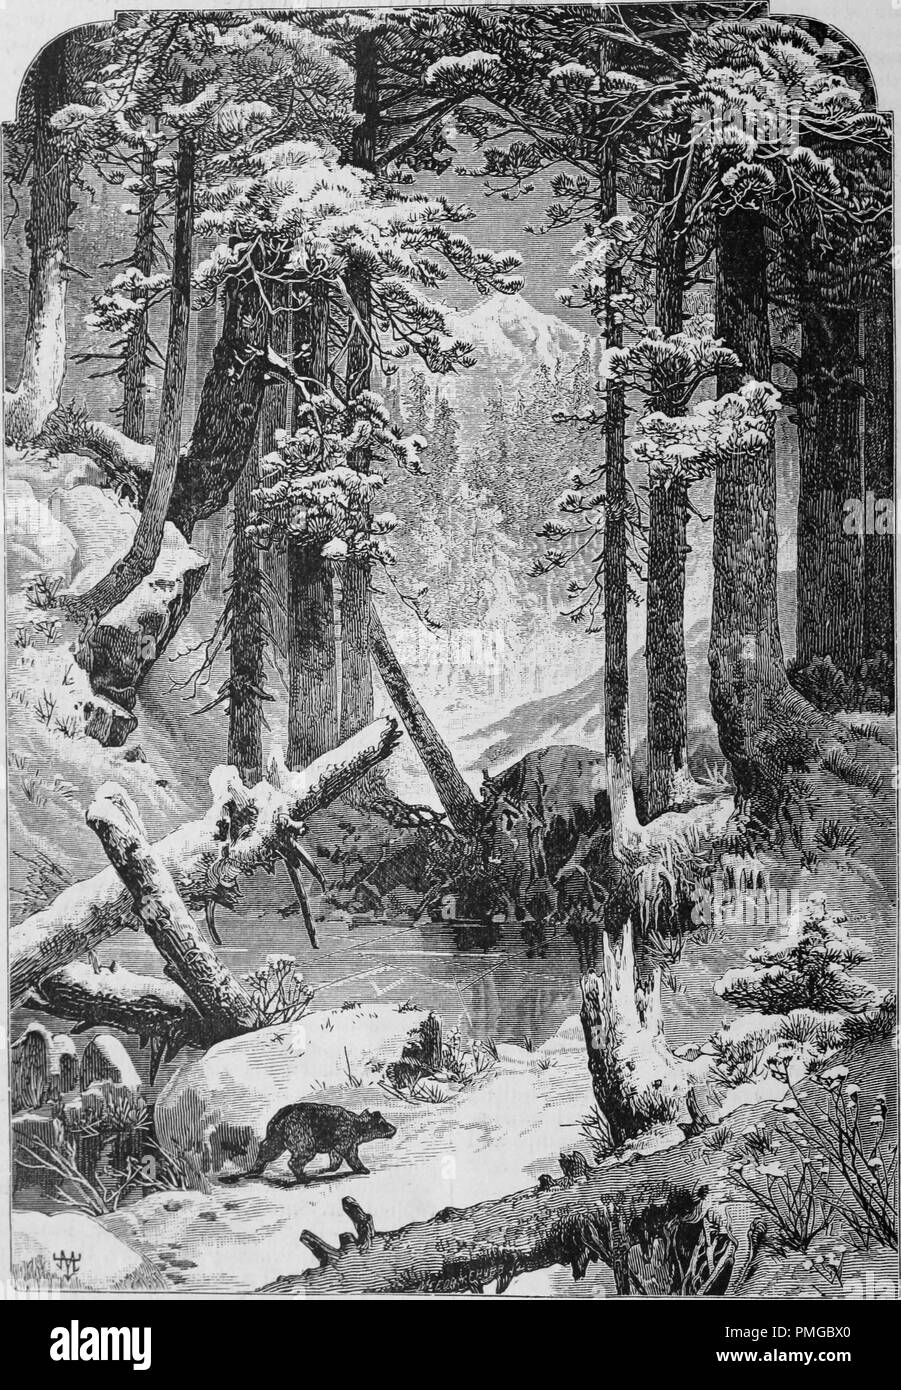 Engraving of a winter forest in the Sierra Nevada Mountains, from the book 'The Pacific tourist', 1877. Courtesy Internet Archive. () - Stock Image